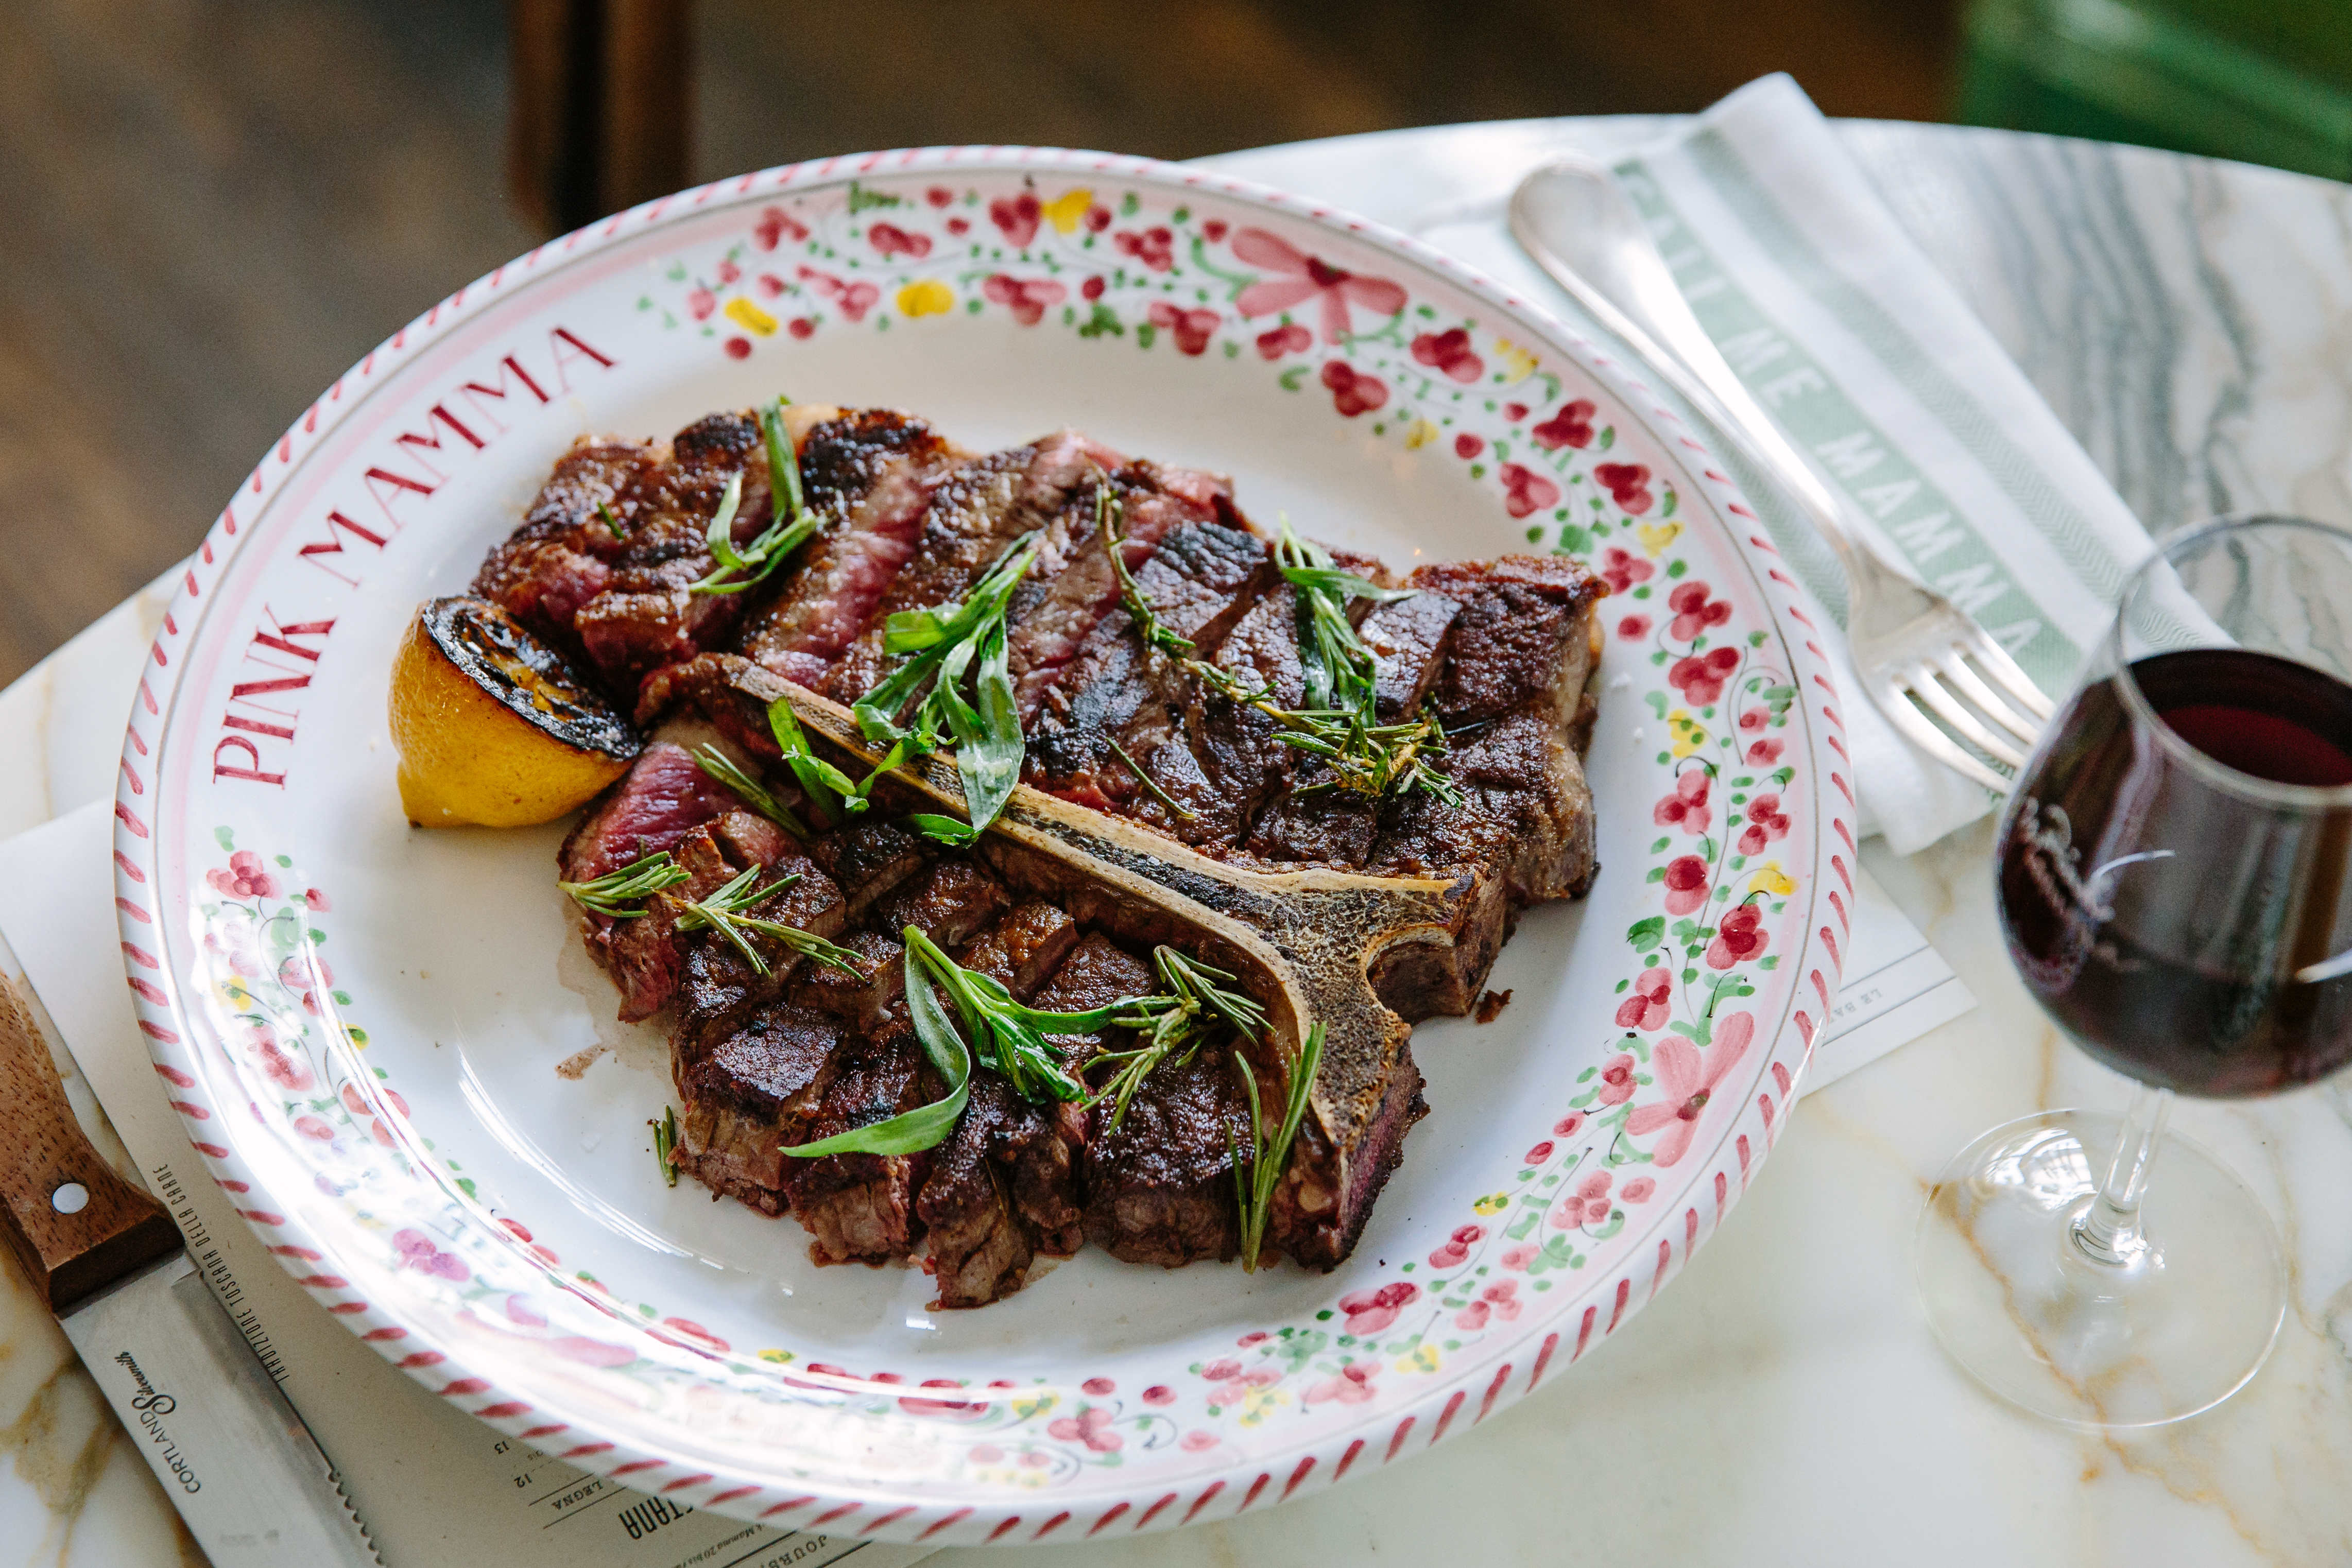 A succulent steak sits on a custom plate with a glass of red wine.